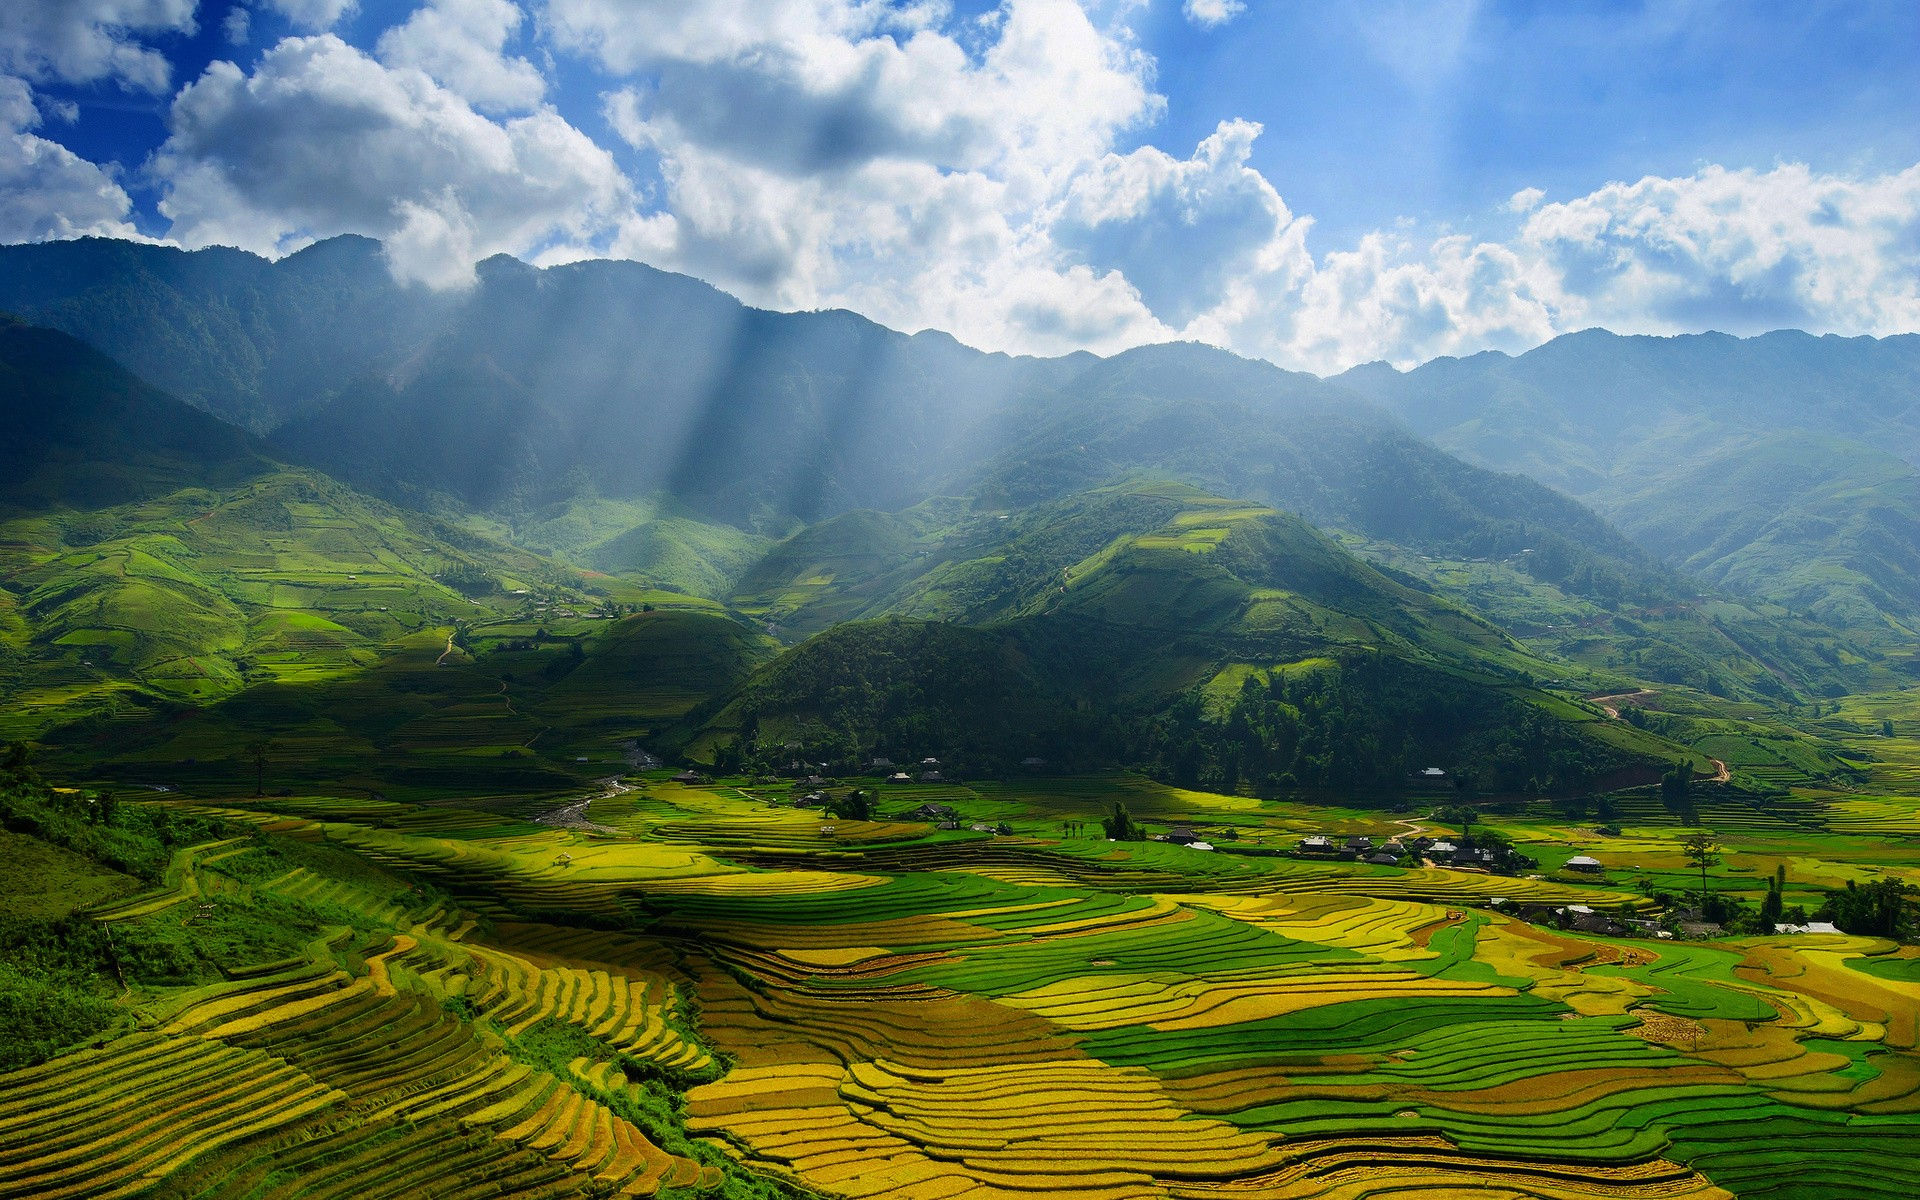 mu-cang-chai-district-vietnam-hd-wallpaper